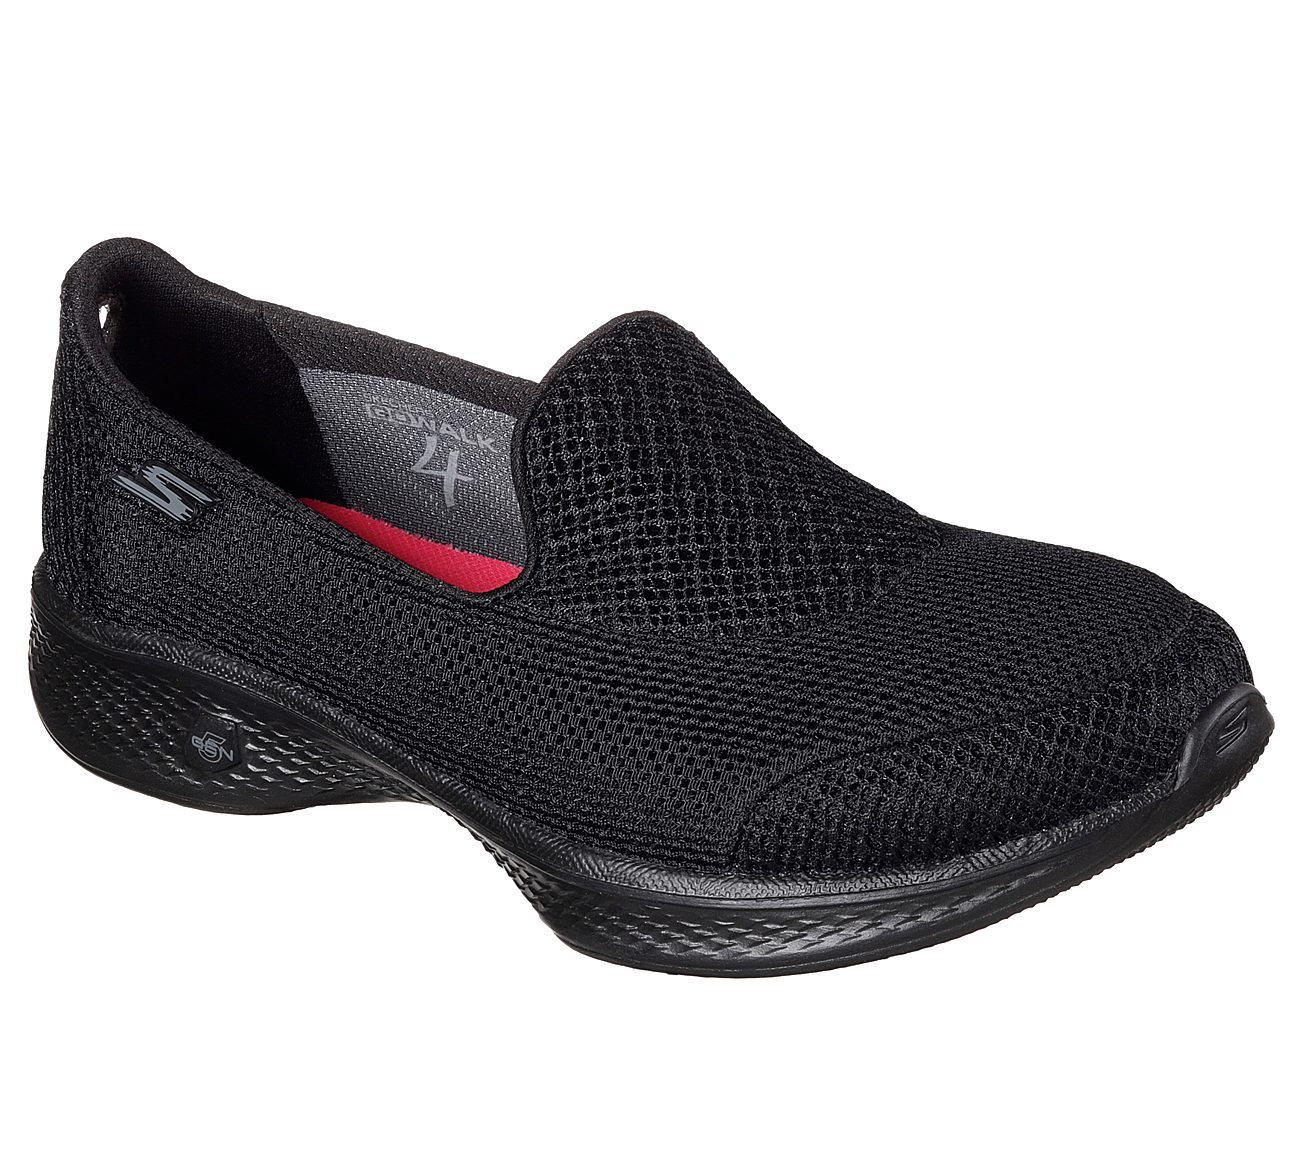 diario fingir Permitirse  Buy SKECHERS Skechers GOwalk 4 - Propel Skechers Performance Shoes